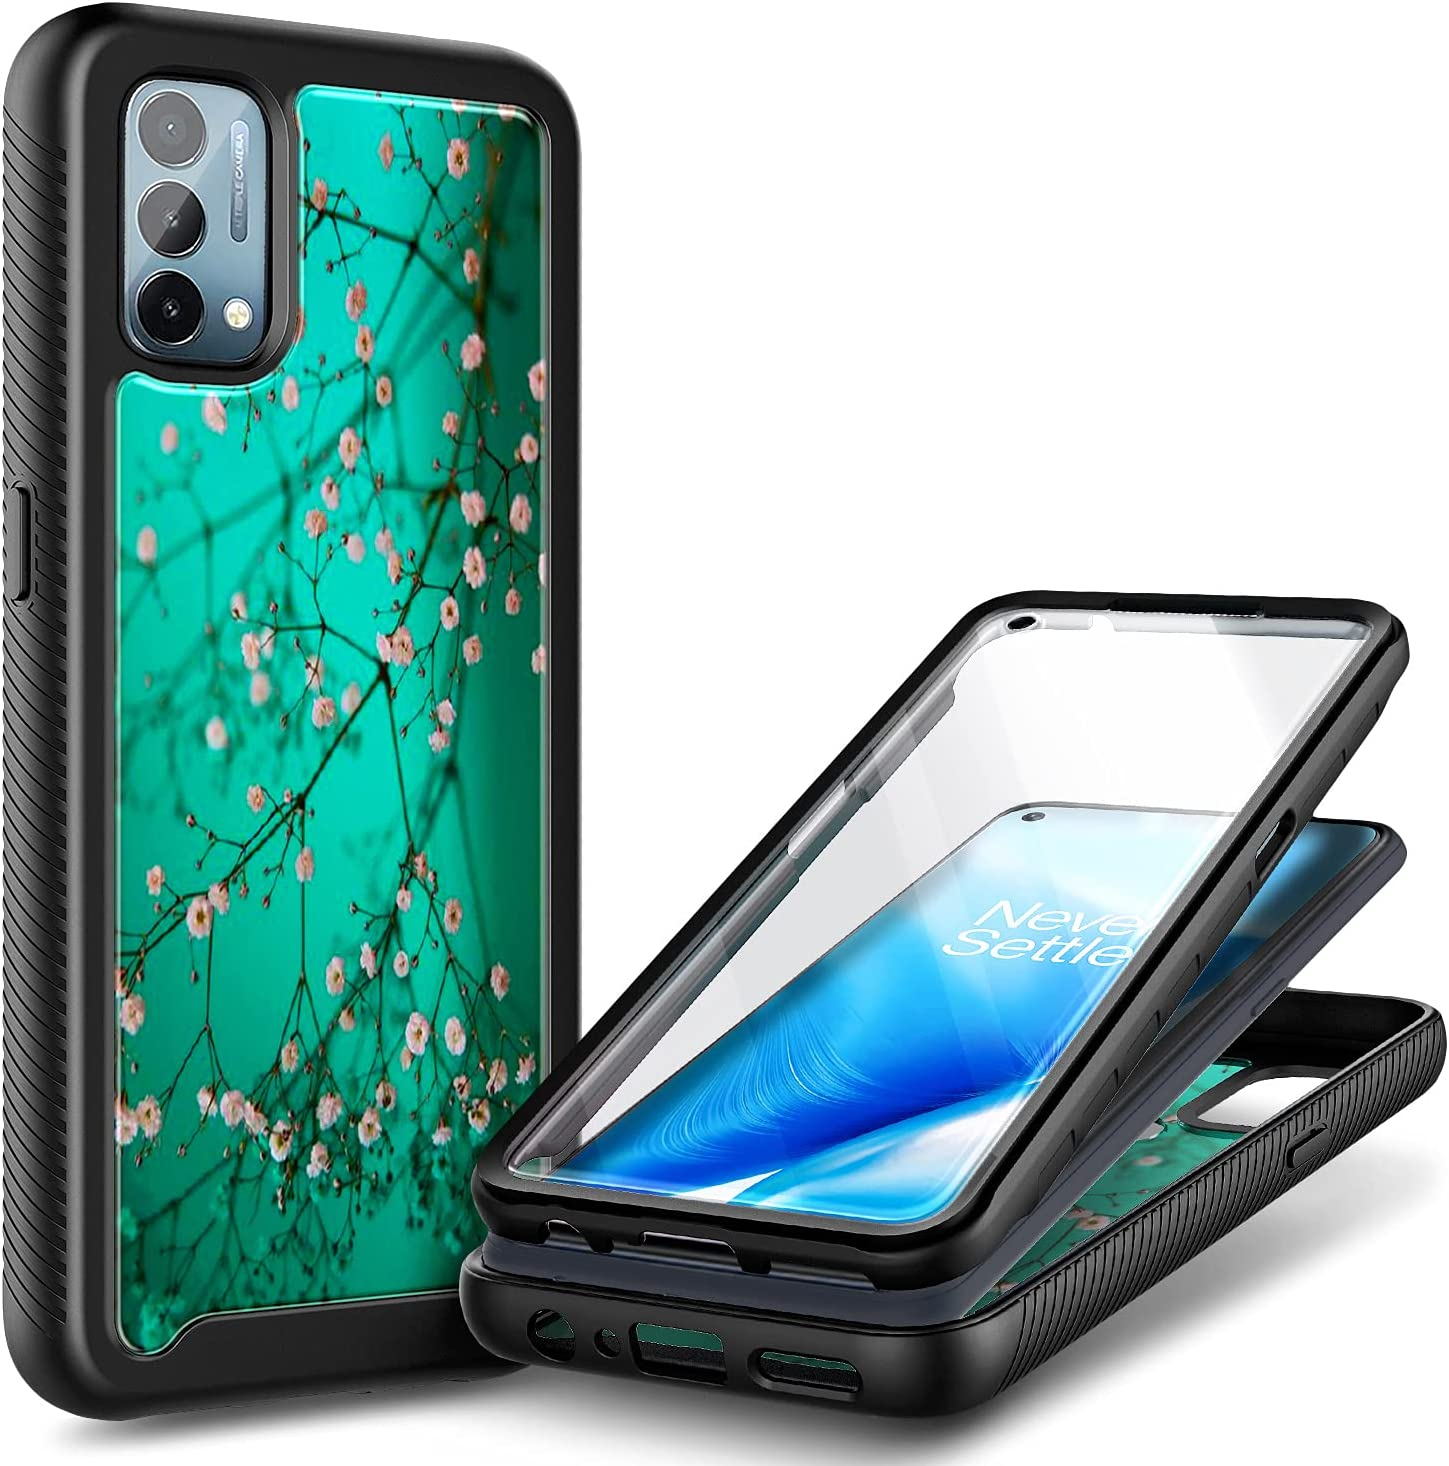 NZND Case Los Angeles Mall for OnePlus Nord N200 Screen Protect 5G with Deluxe Built-in